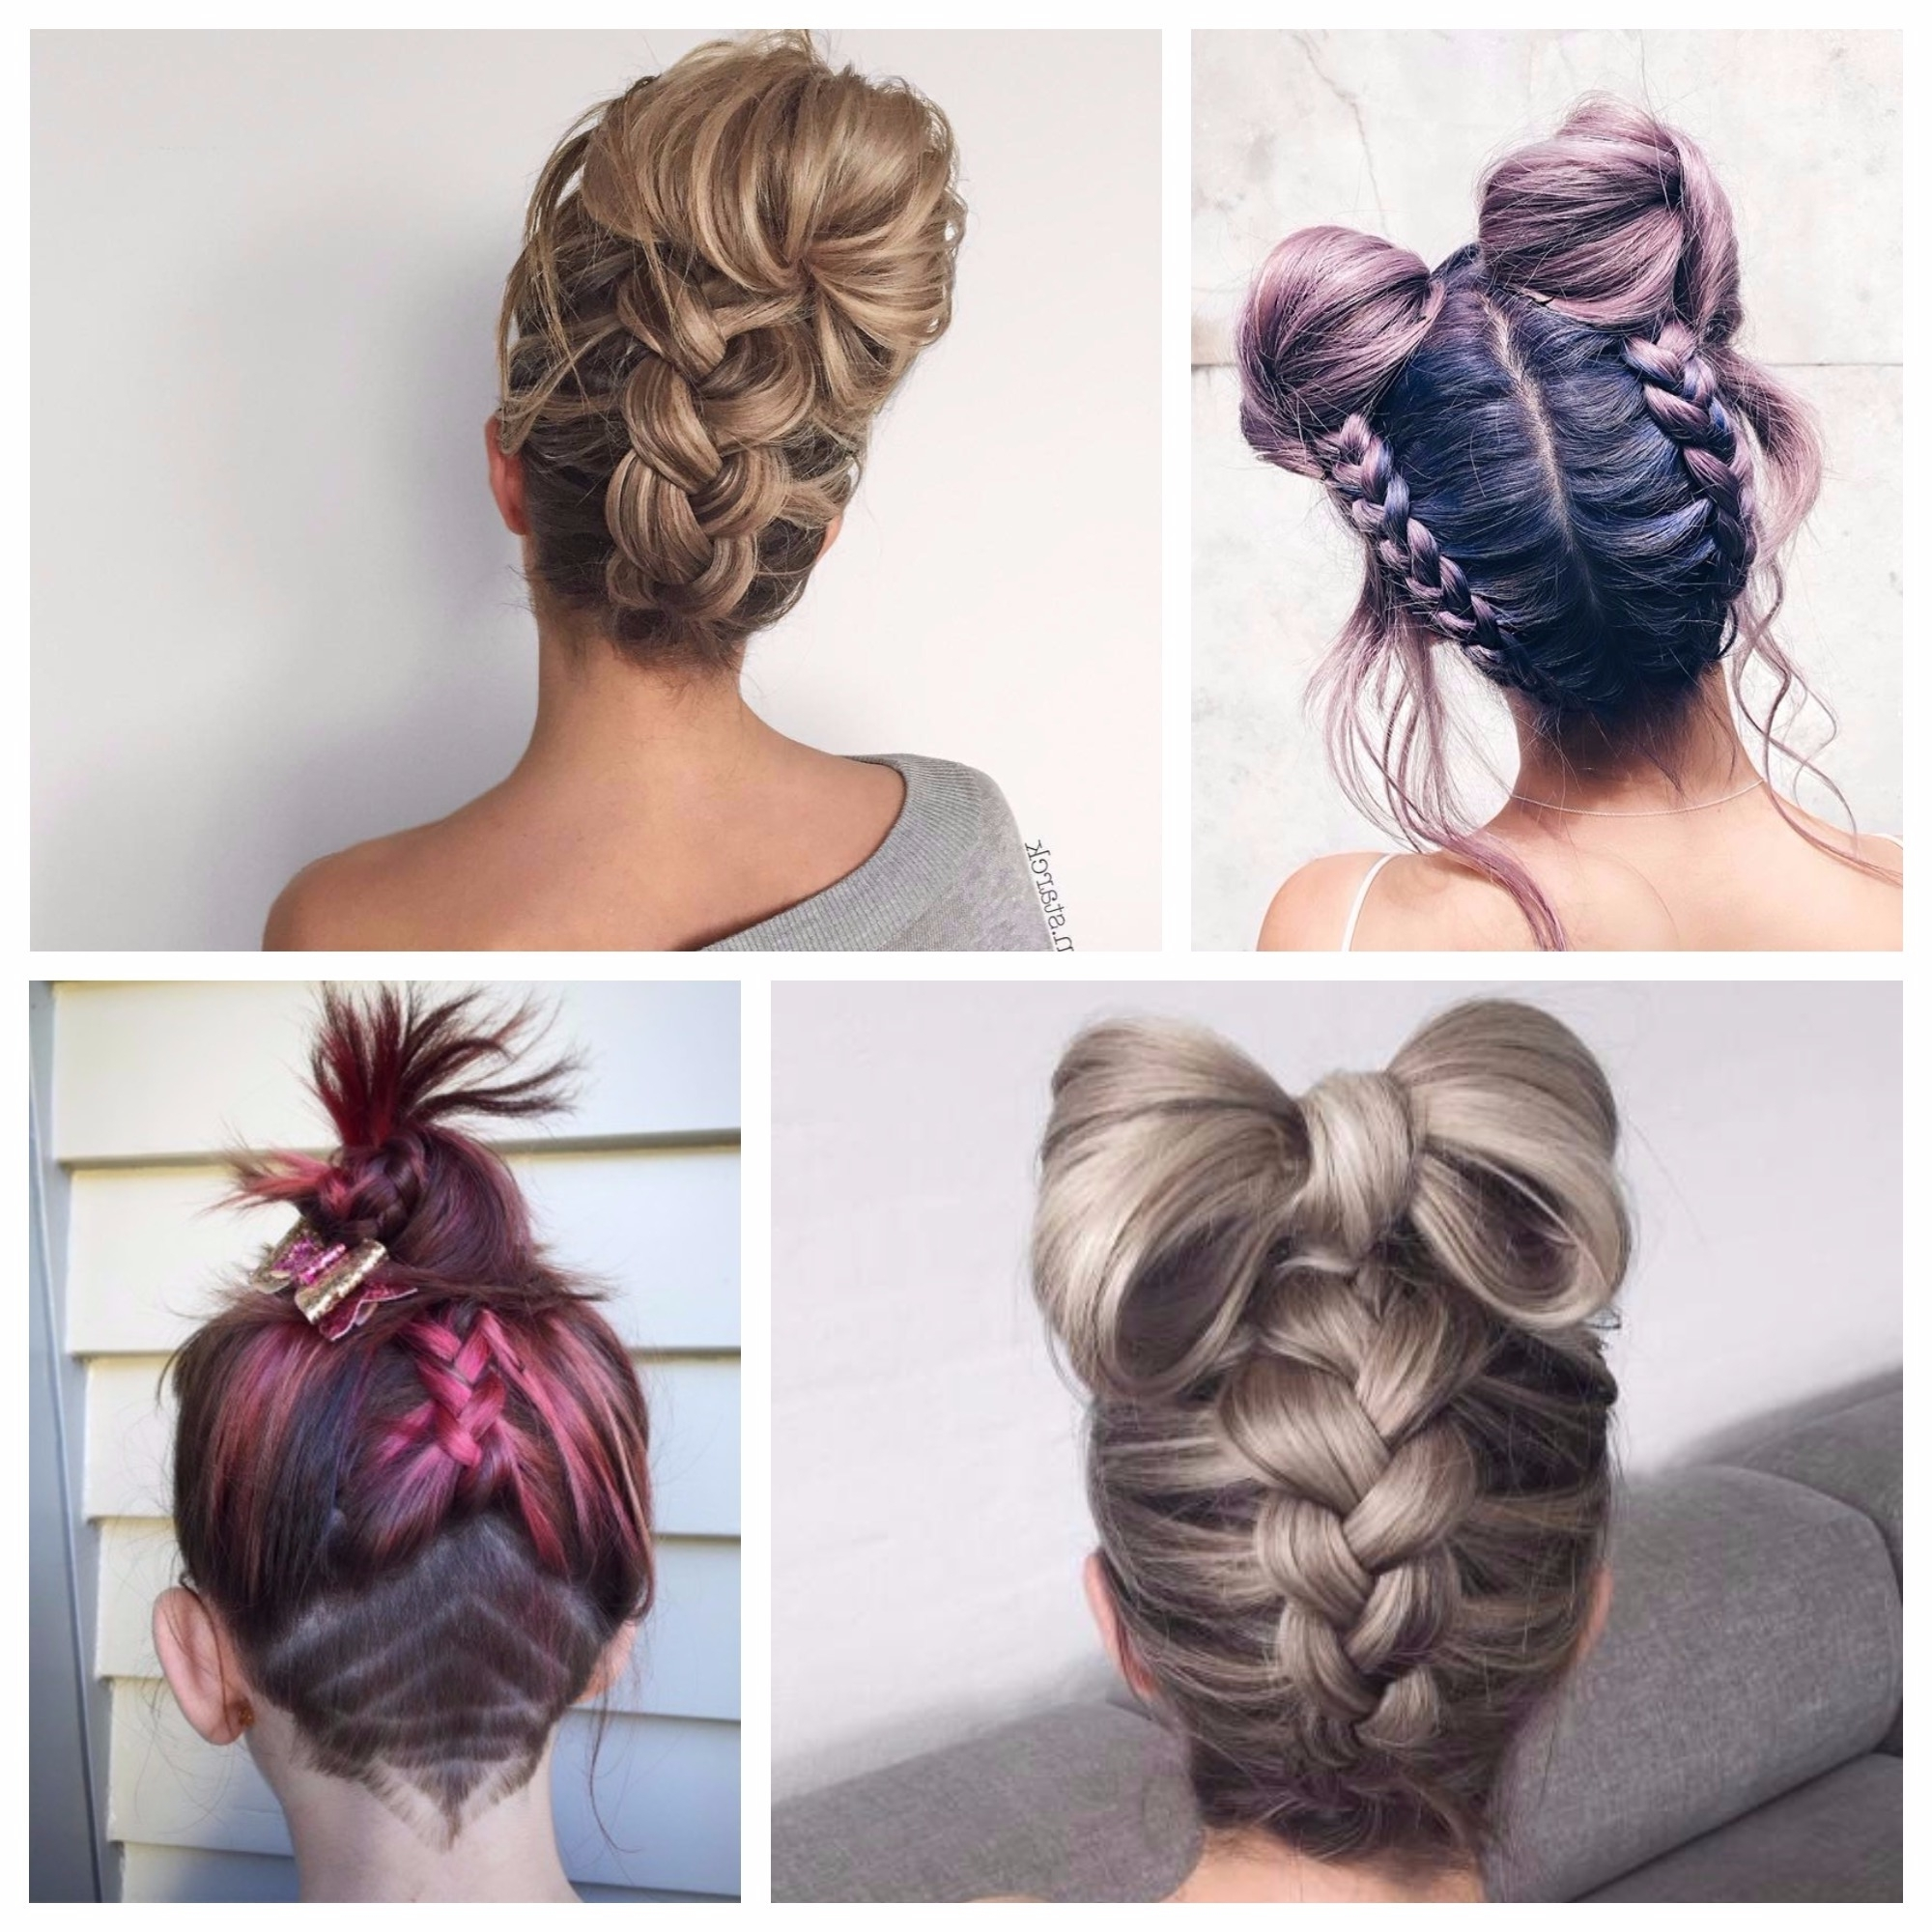 Brilliant Ideas Of Braided Hairstyles With Buns Charming Bun Regarding Trendy Upside Down Braids With Double Buns (View 4 of 15)